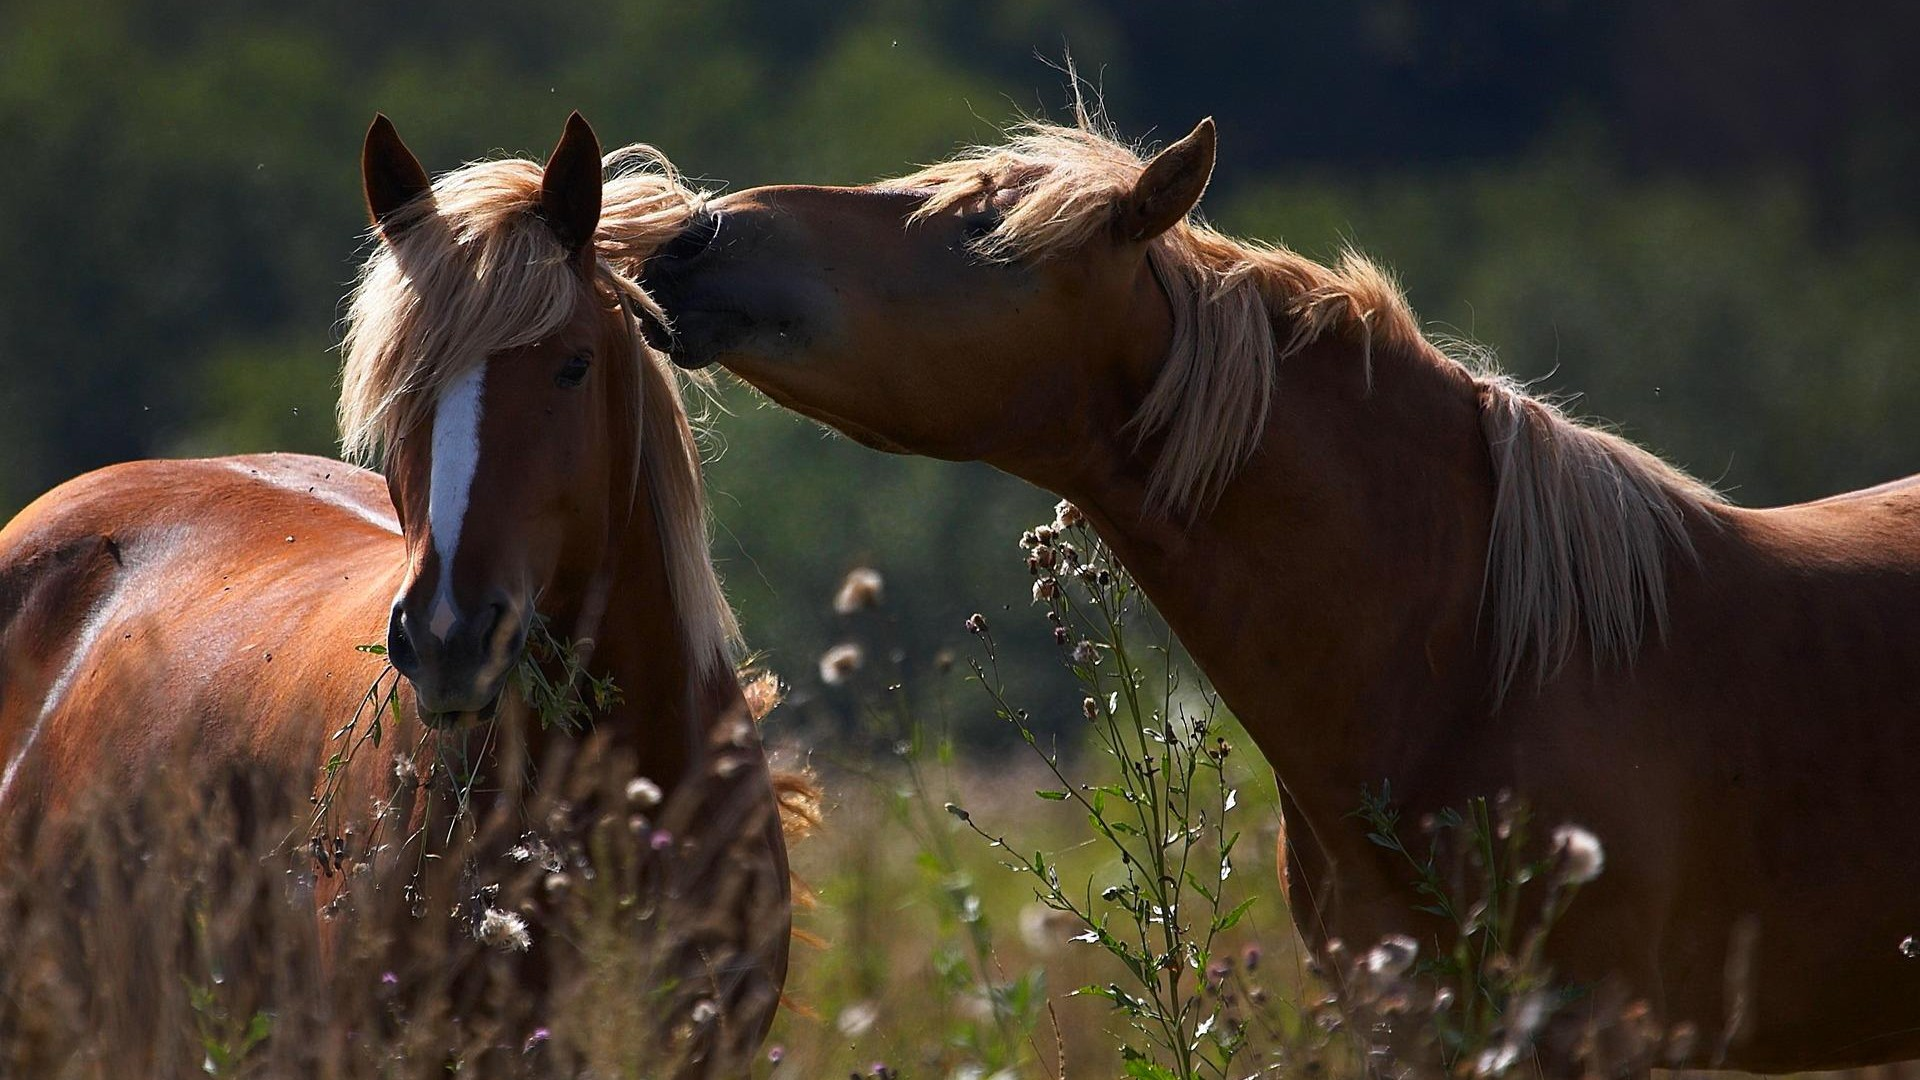 Wild Horse Wallpapers, Pictures, Images